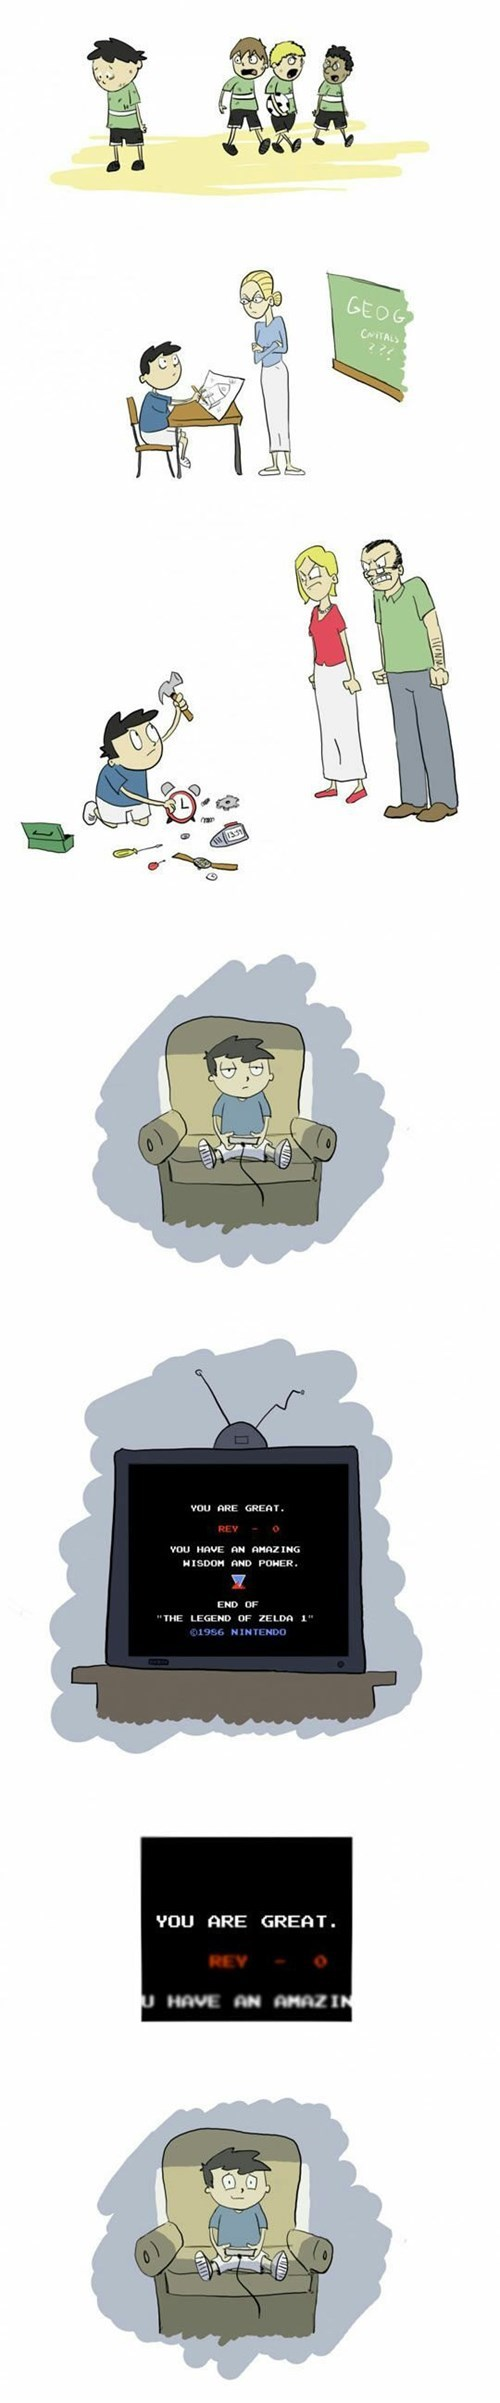 funny-web-comics-the-reason-why-people-play-videogames